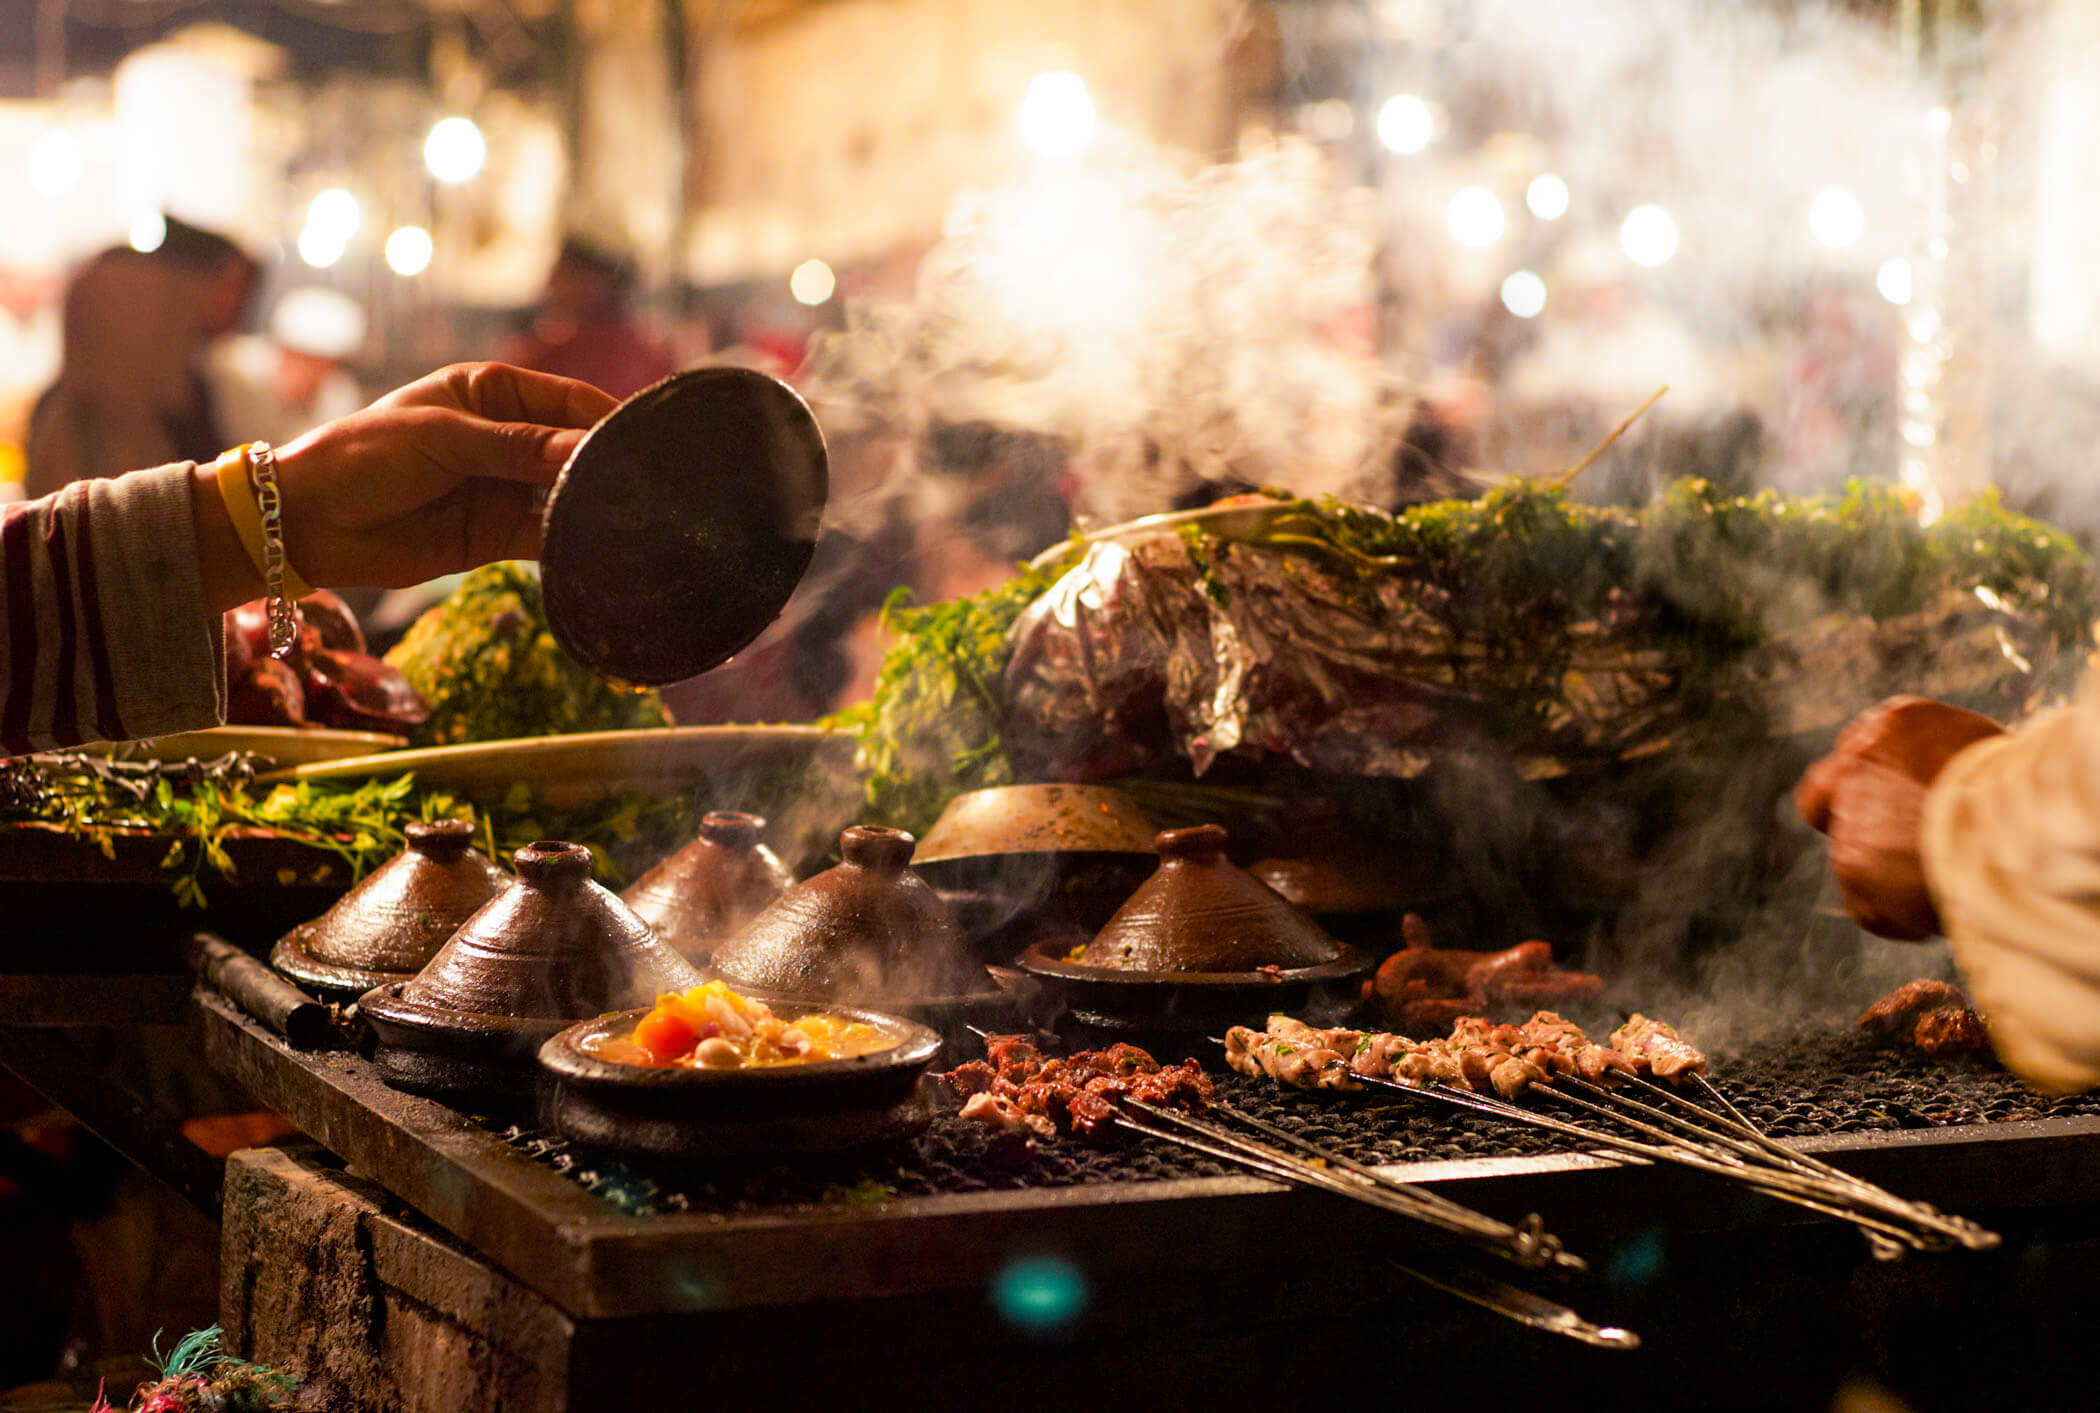 A woman checking her tagine pots as they sit on a large grill with various meats and kebabs.